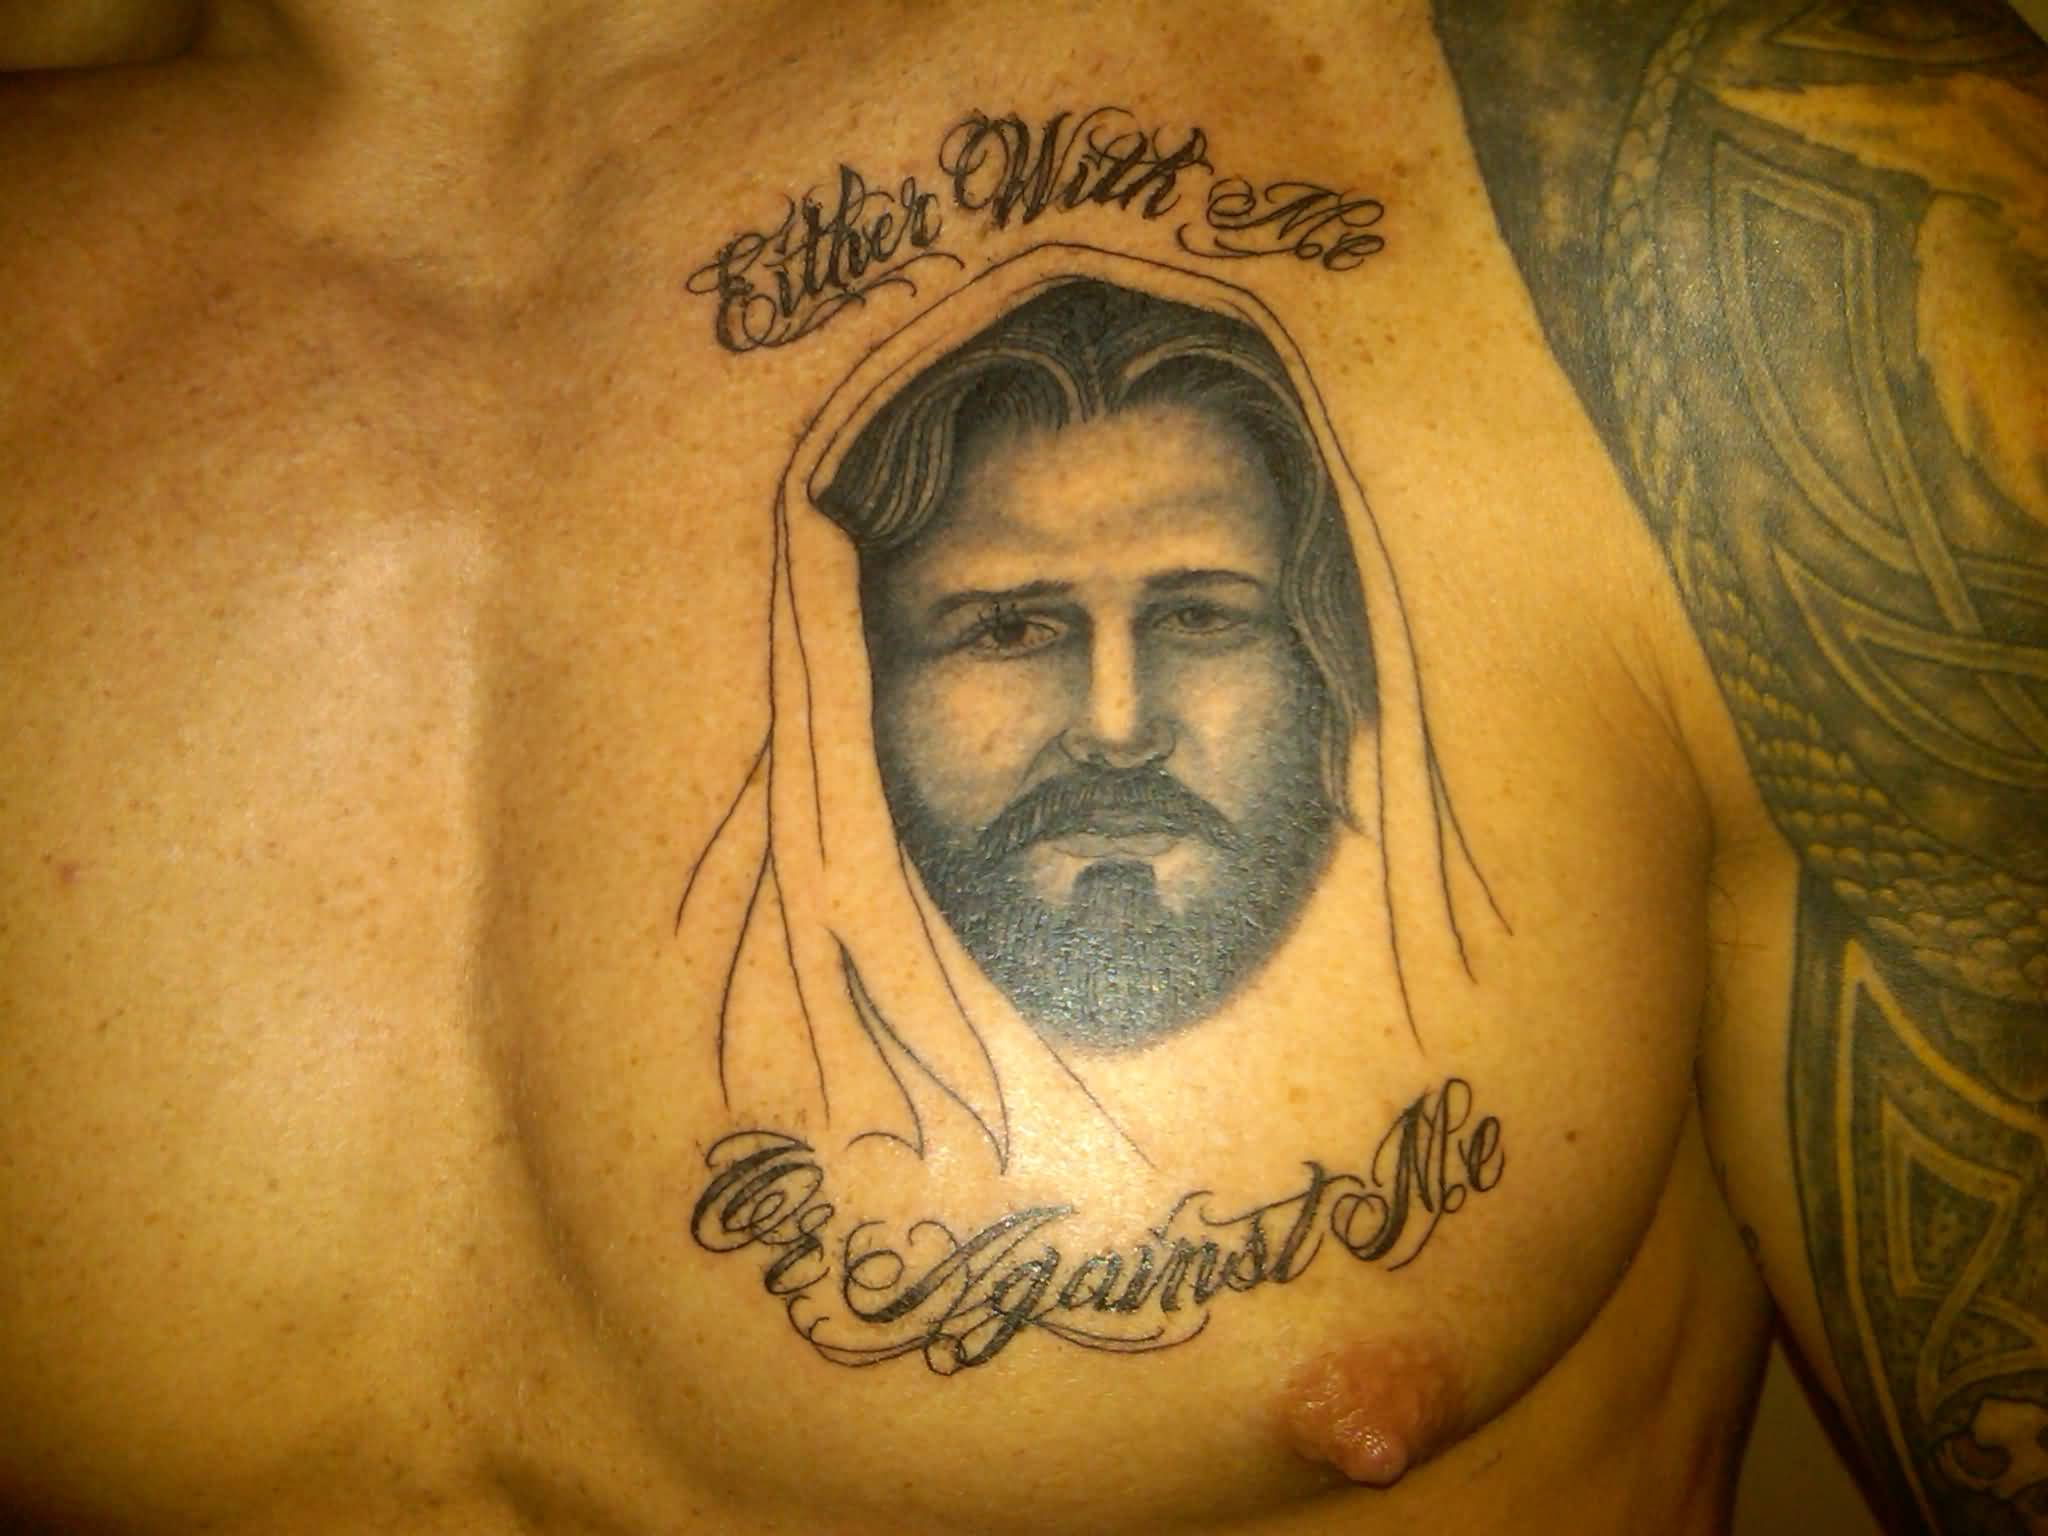 On Left Chest Awesome Tattoo